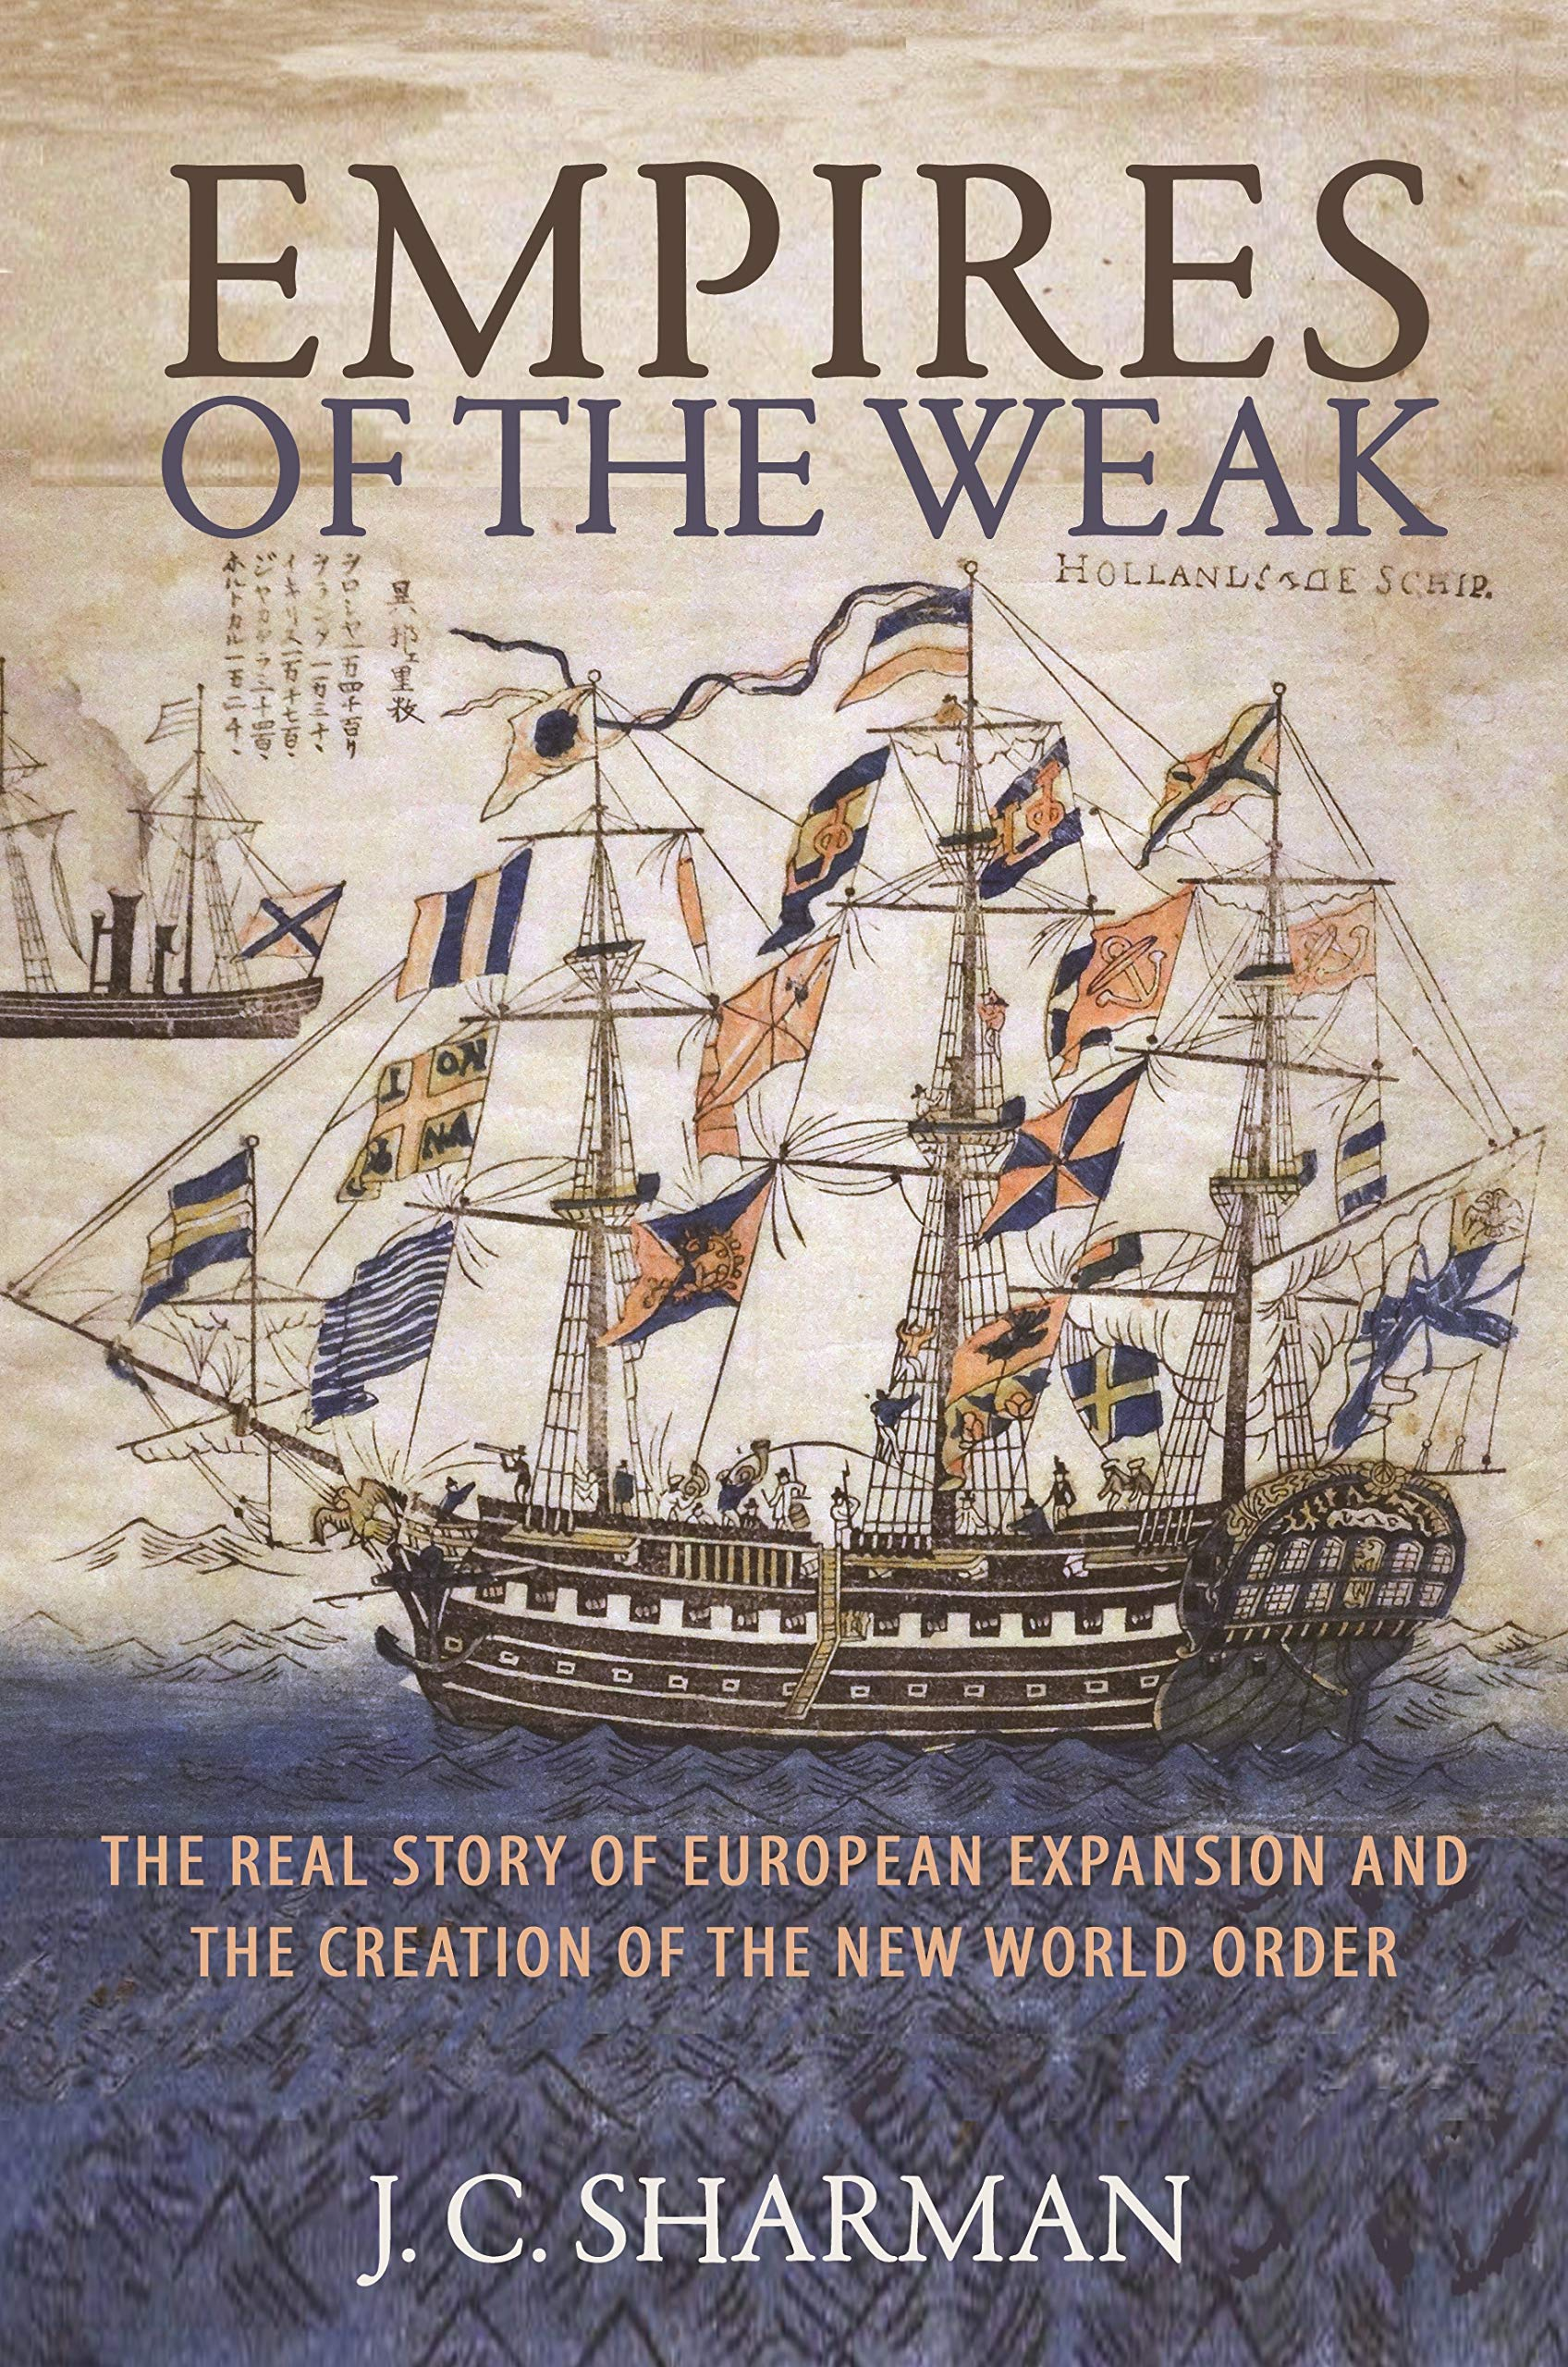 Empires of the Weak: The Real Story of European Expansion and the Creation of the New World Order